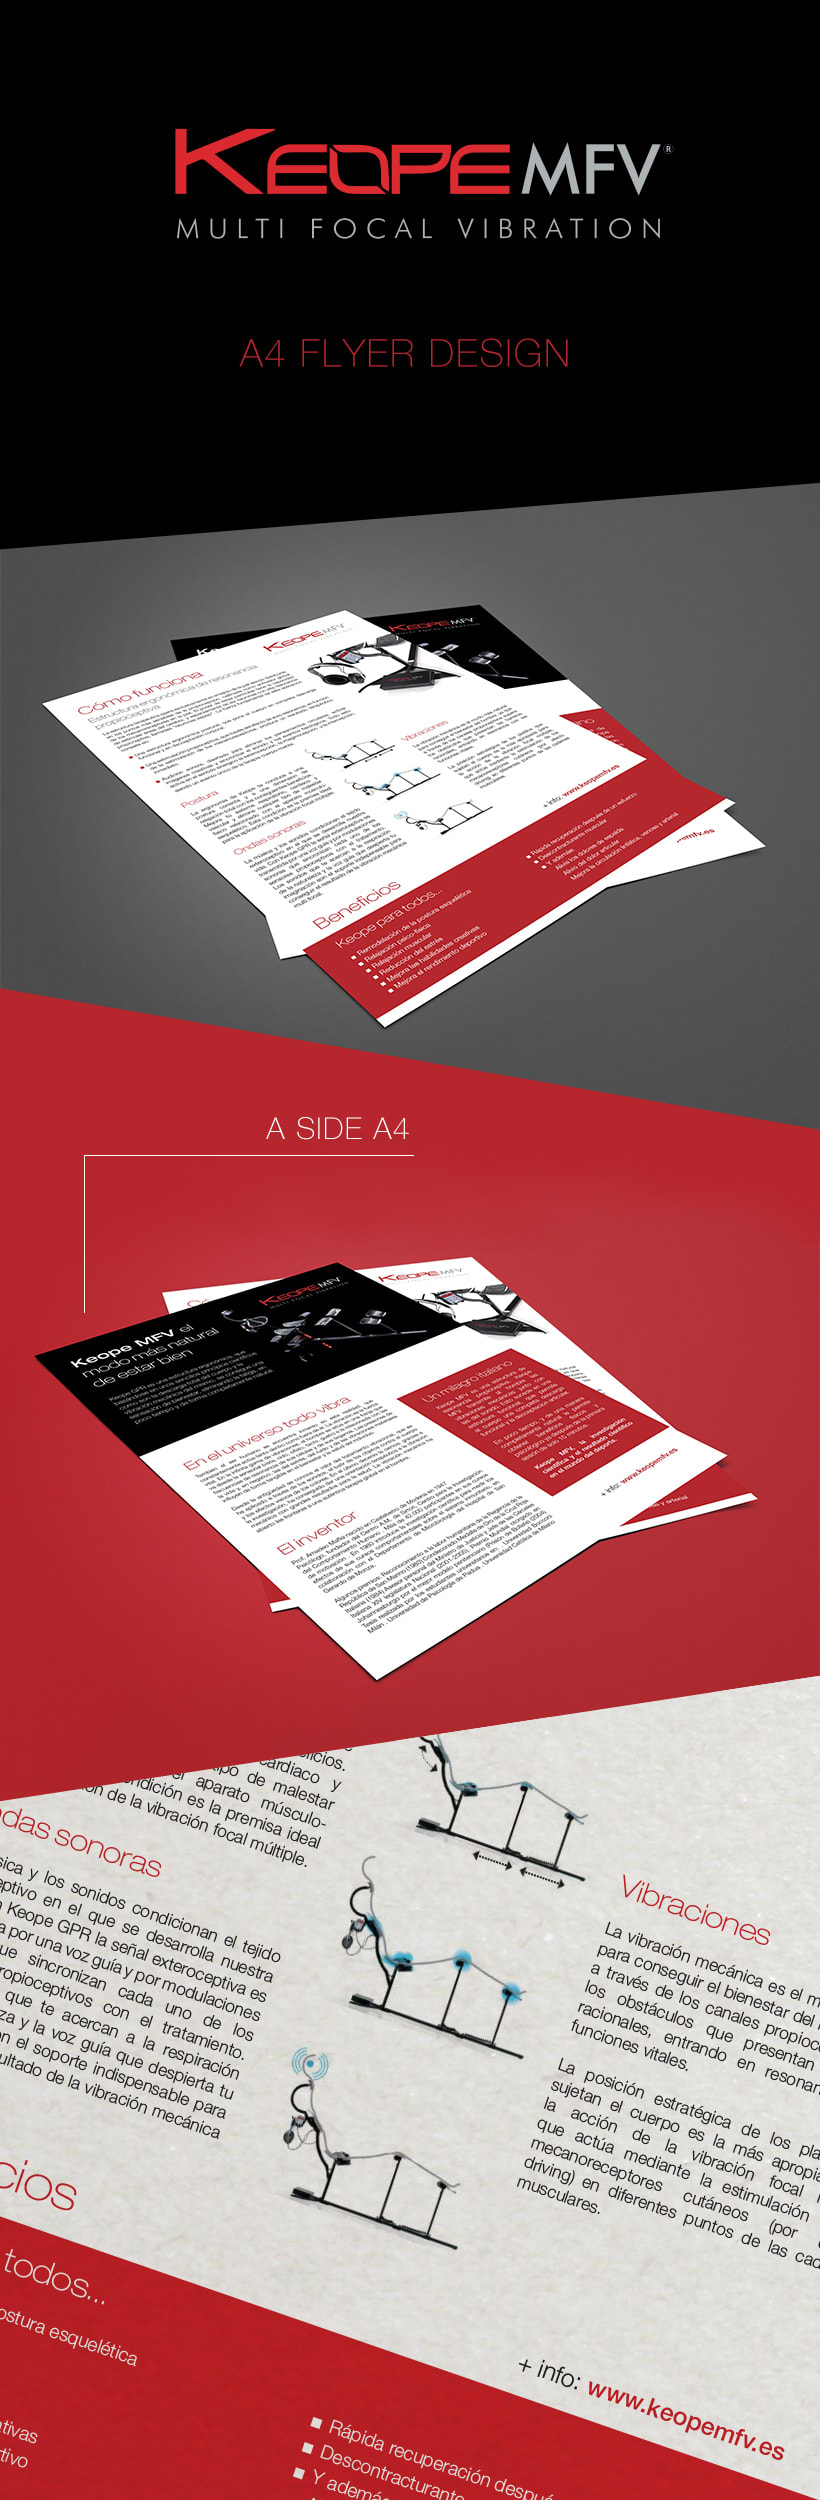 Keope MFV - A4 Flyer Design -1